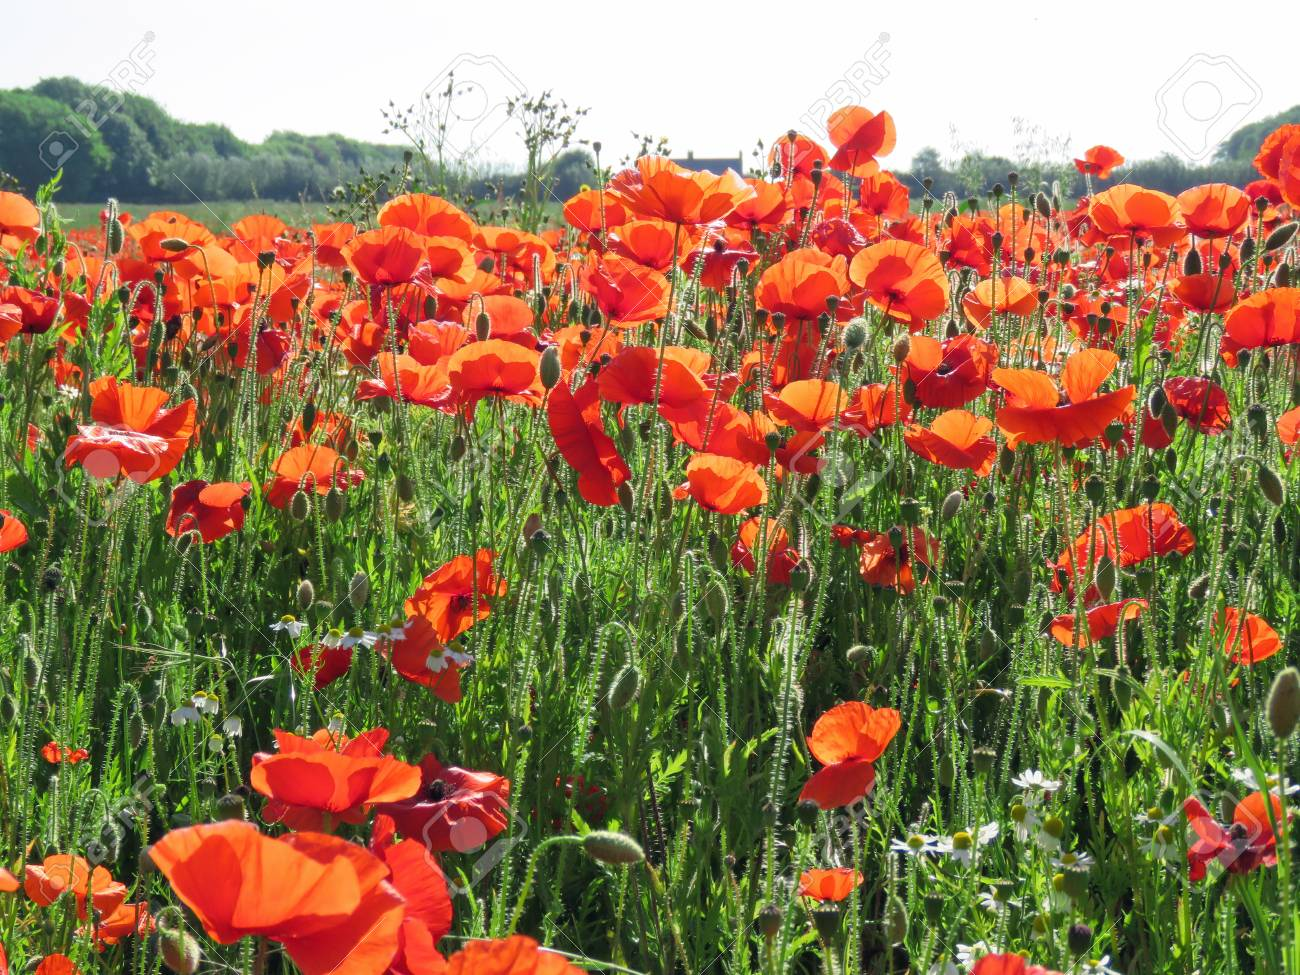 A meadow full of poppies and grasses in rural English countryside Standard-Bild - 82552570